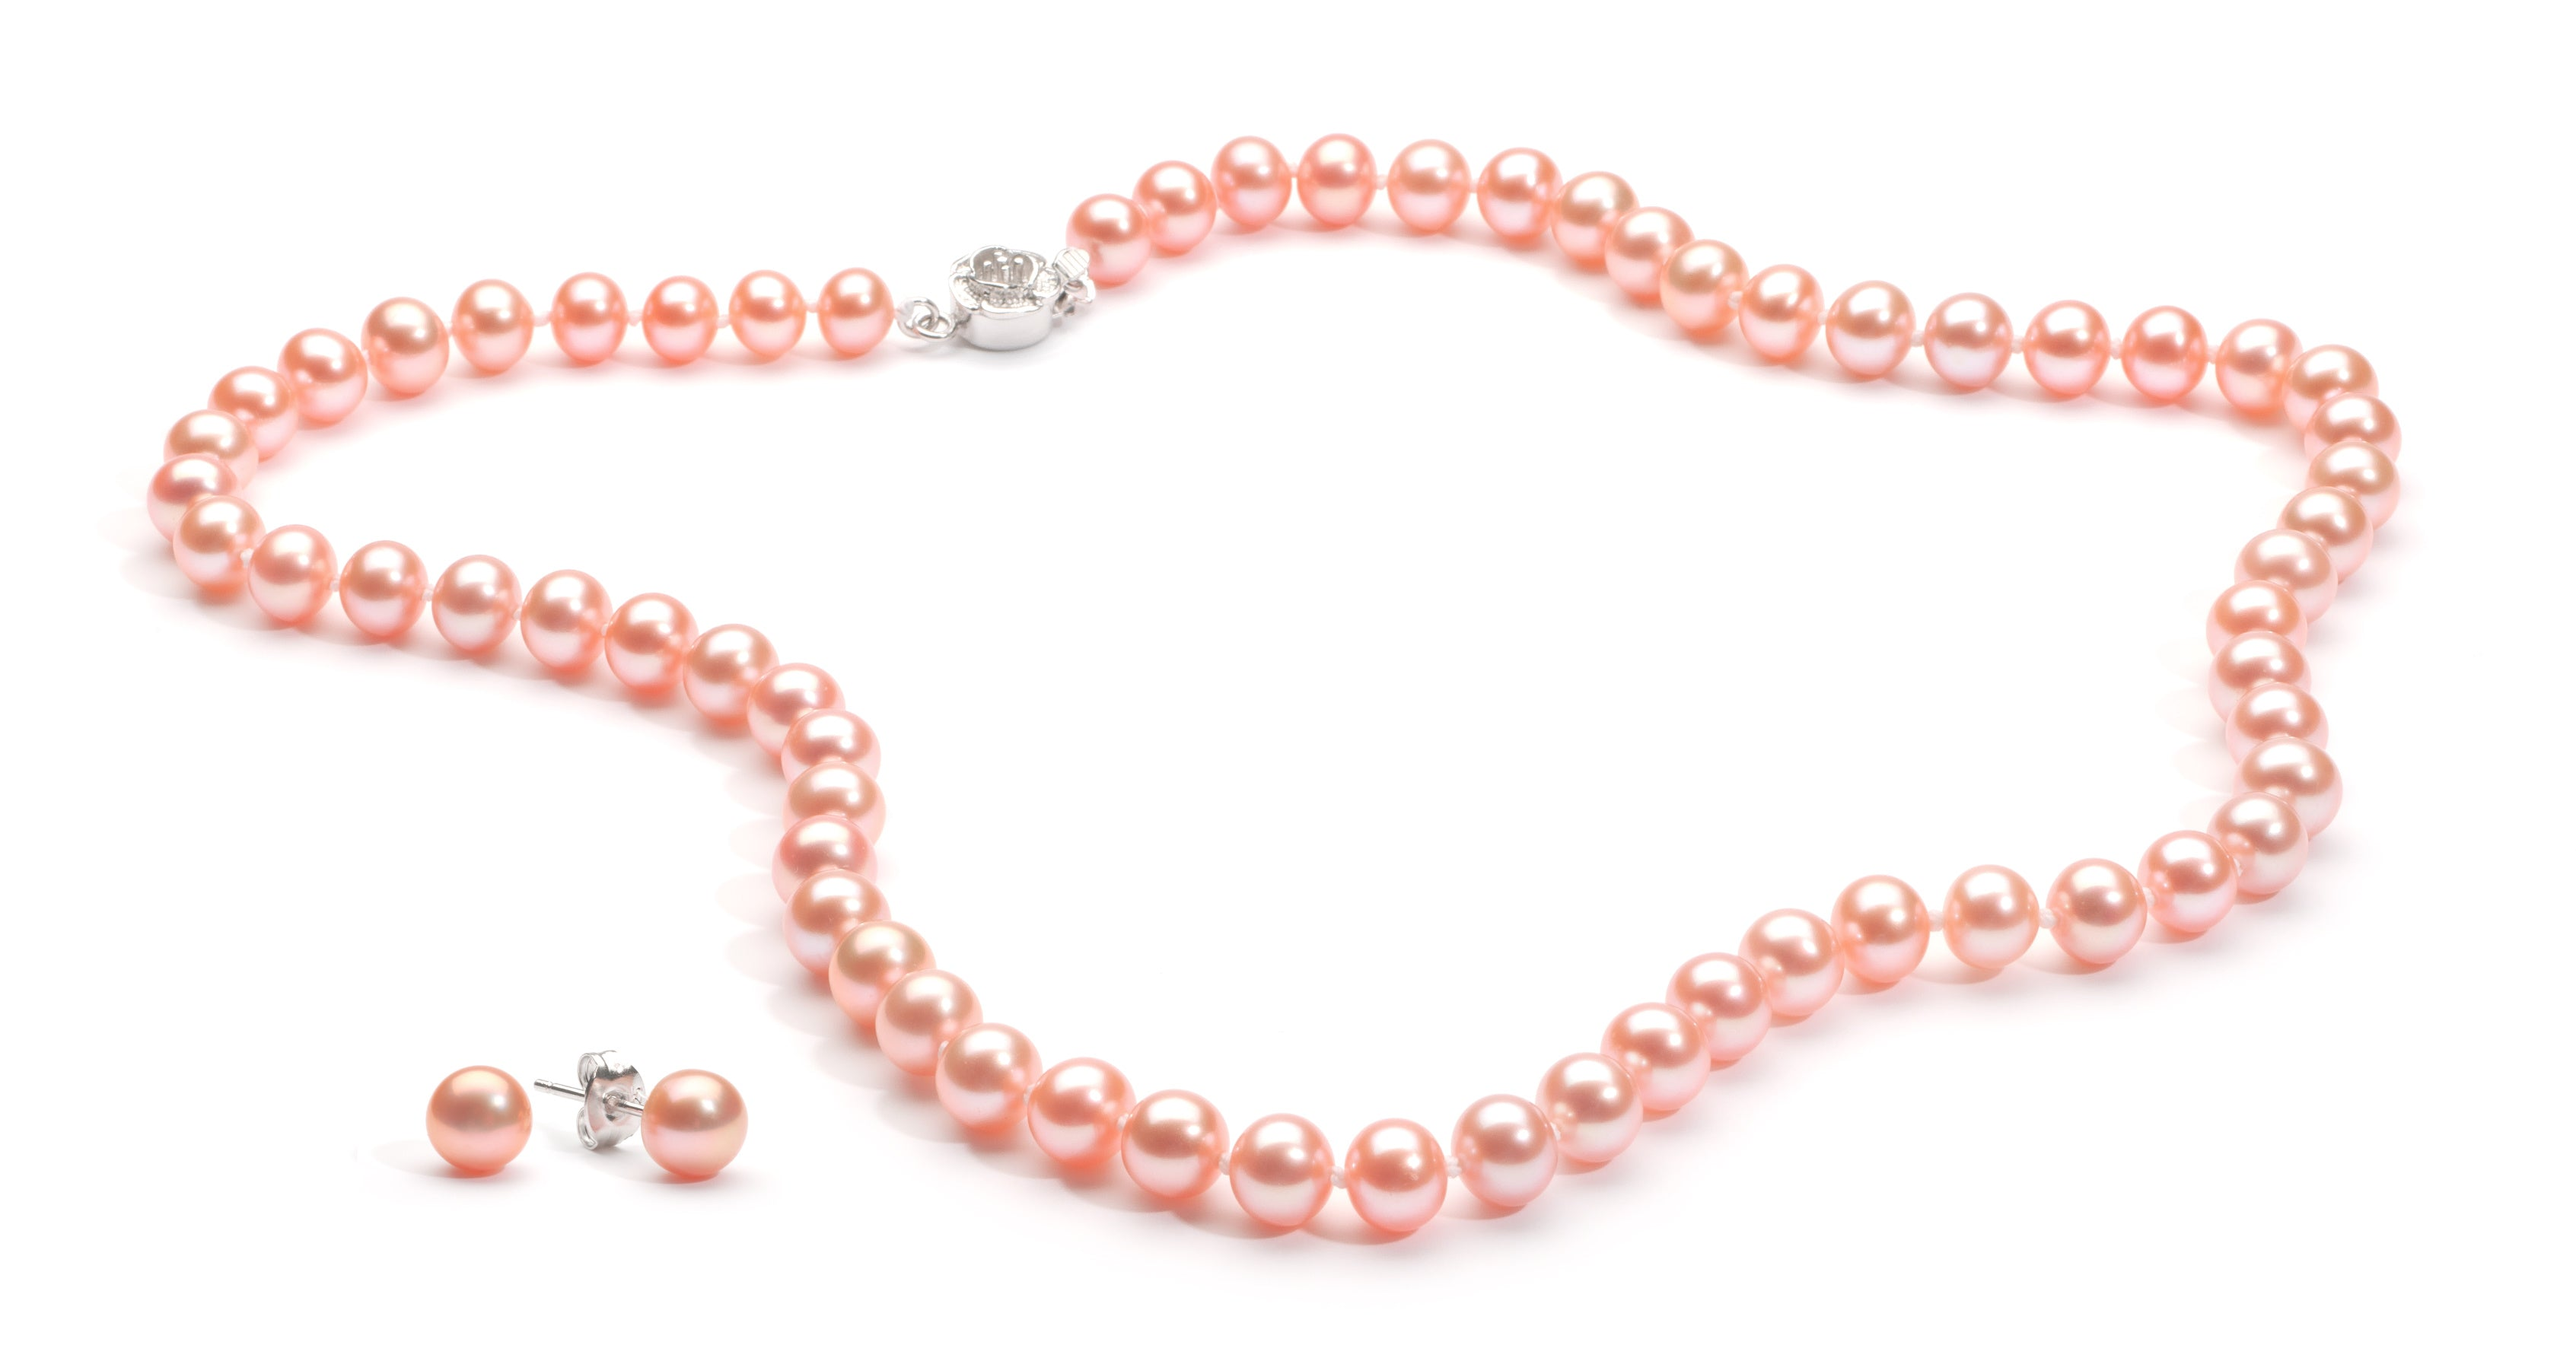 Necklace/Earrings Set 6.0-7.0 mm Pink Freshwater Pearls